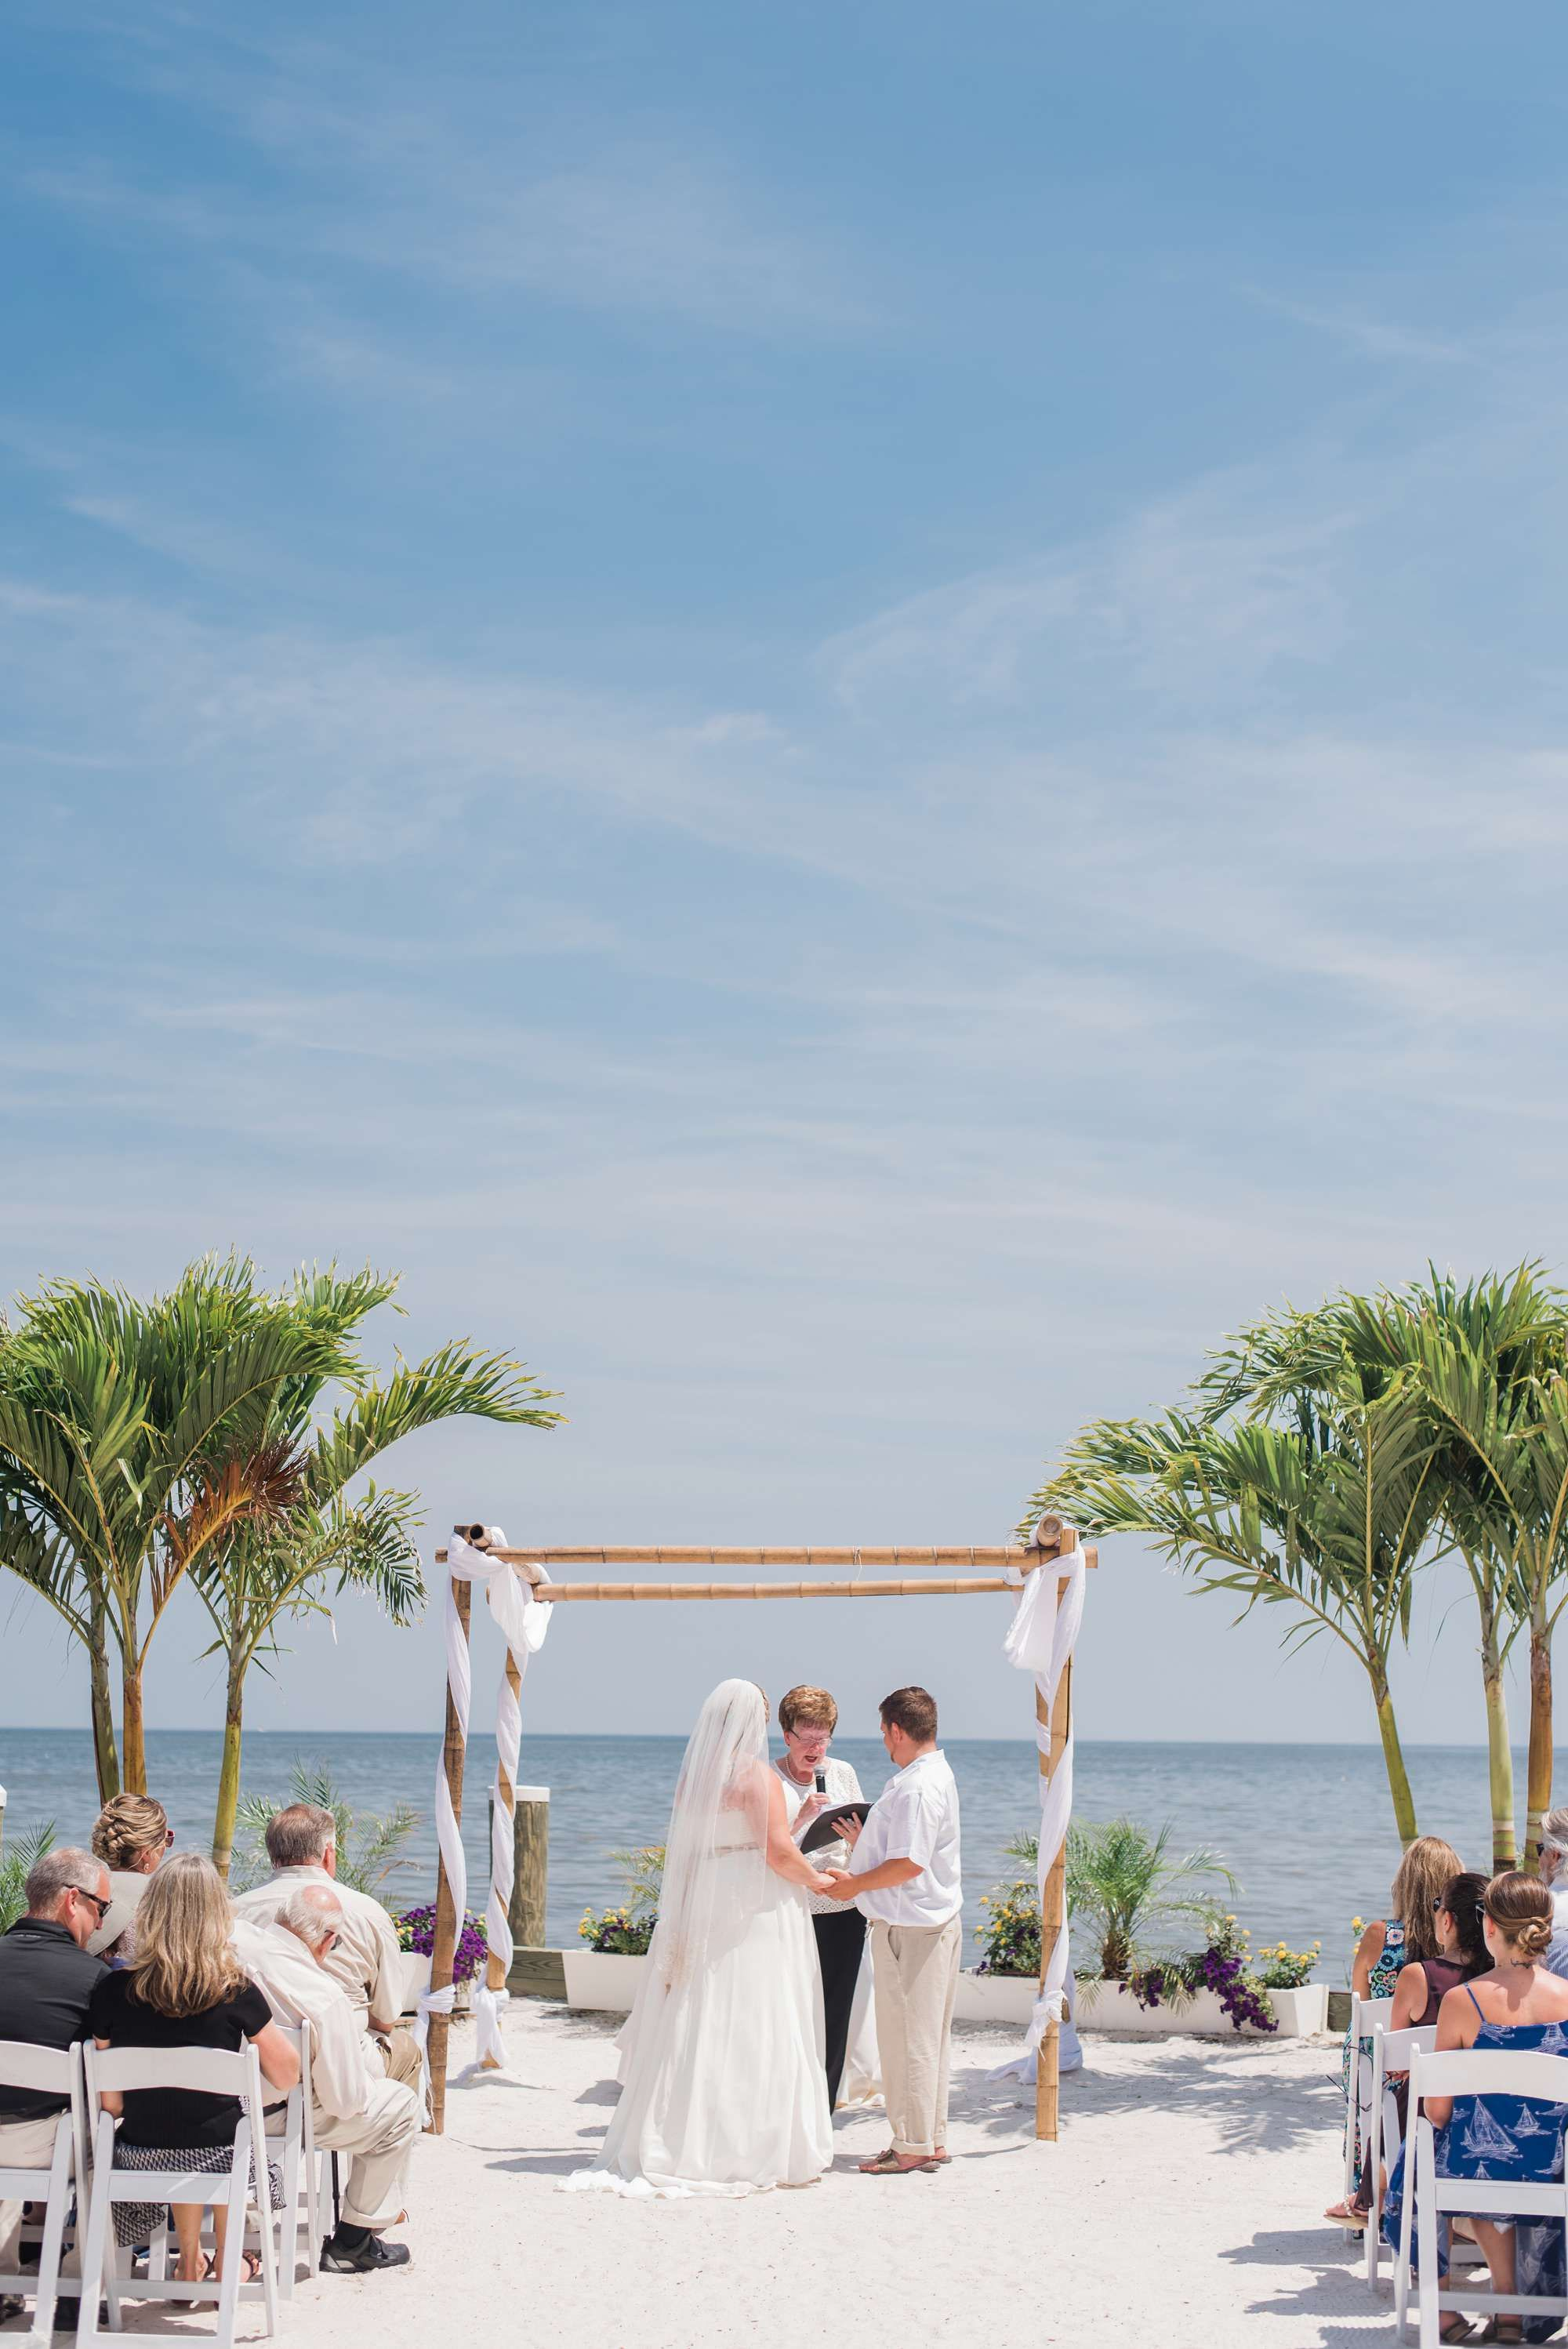 Chesapeake Beach Resort And Spa Elopement Wedding In Southern Maryland By Carla Lutz Photography